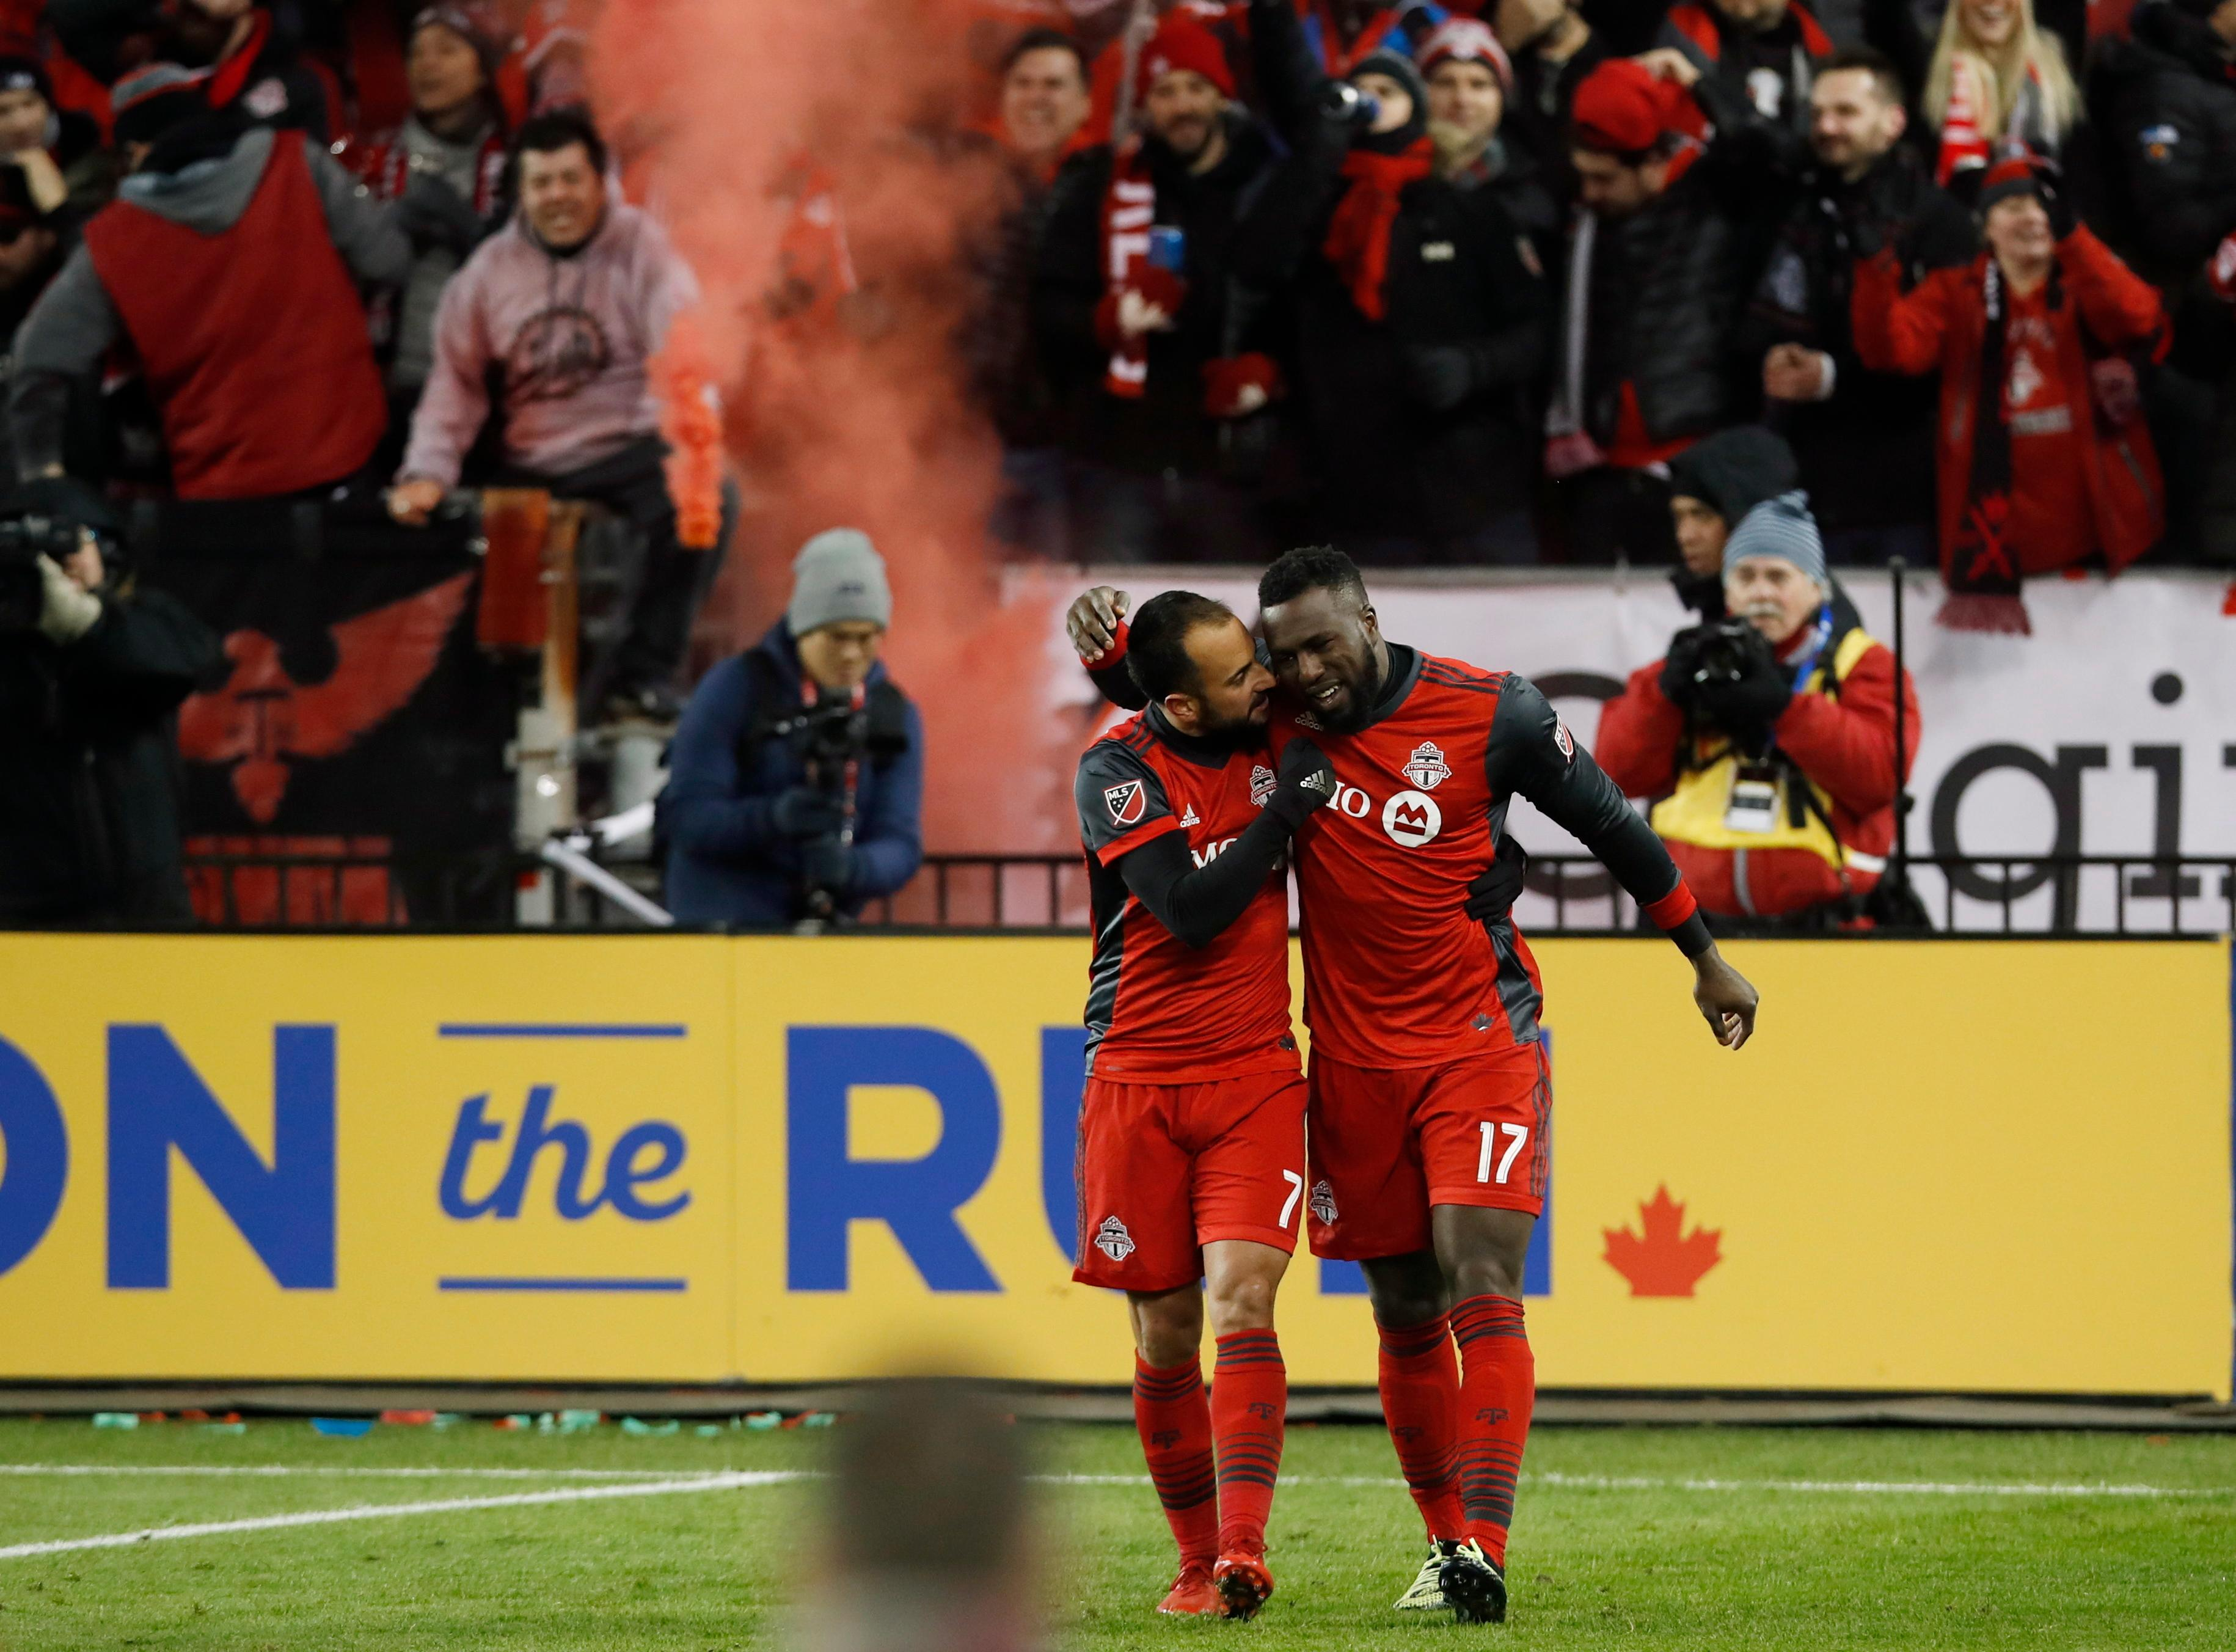 Toronto FC forward Jozy Altidore (17) celebrates his goal with midfielder Victor Vazquez (7) during the second half of an Eastern Conference MLS final playoff soccer game against the Columbus Crew, Wednesday, Nov. 29, 2017 in Toronto. (Mark Blinch/The Canadian Press via AP)